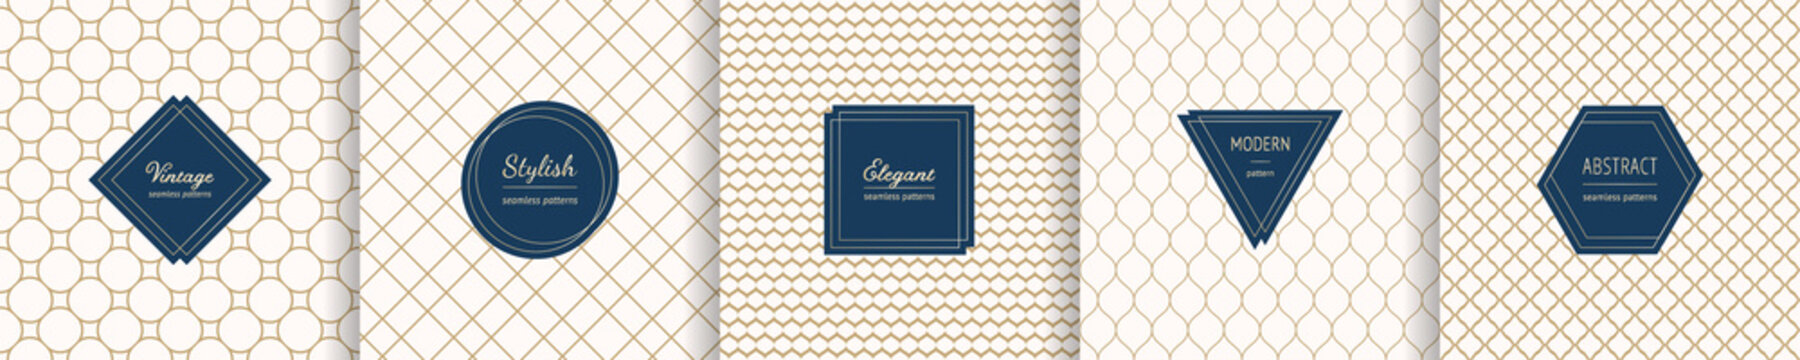 Set of vector golden geometric seamless patterns with modern minimal labels. Elegant mesh textures. Subtle gold backgrounds collection. Art deco style. Premium design template for decor, product, card